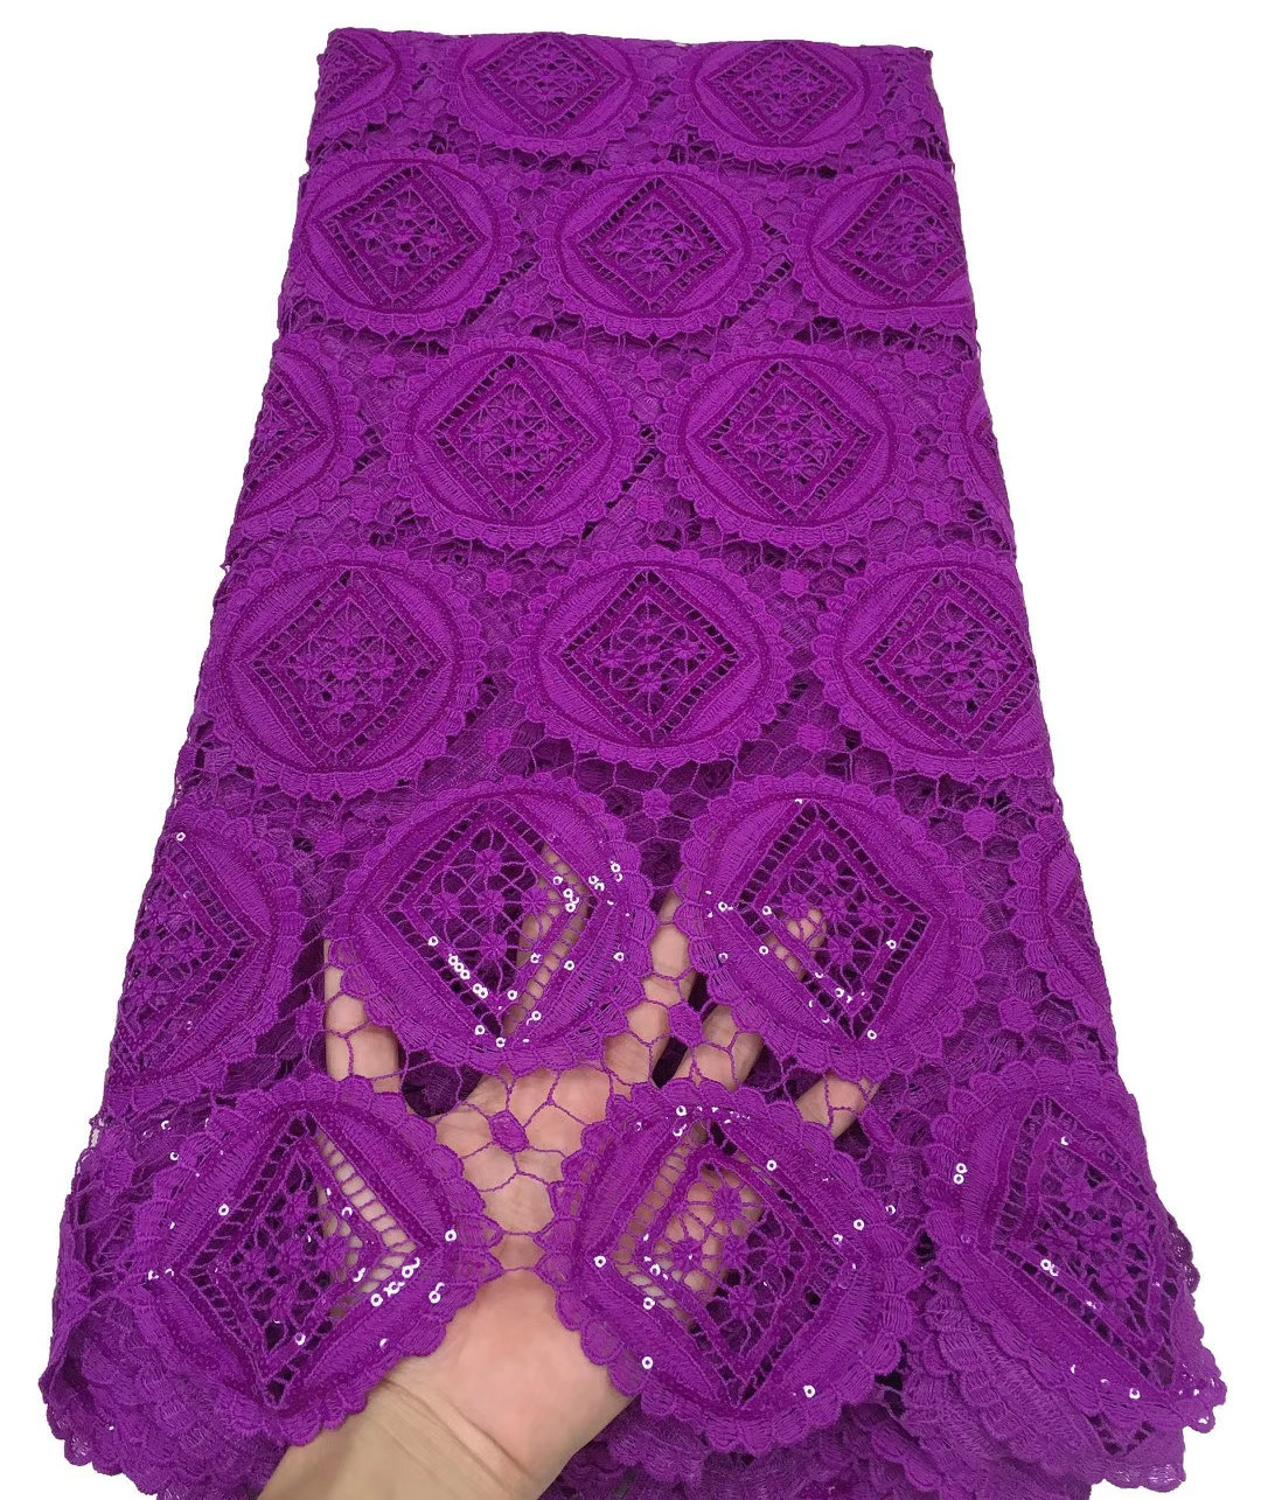 Gorgeous Nigerian Tulle French Net Lace Embroidered African Cord Lace Fabric With Sequins For Bridal TS9097